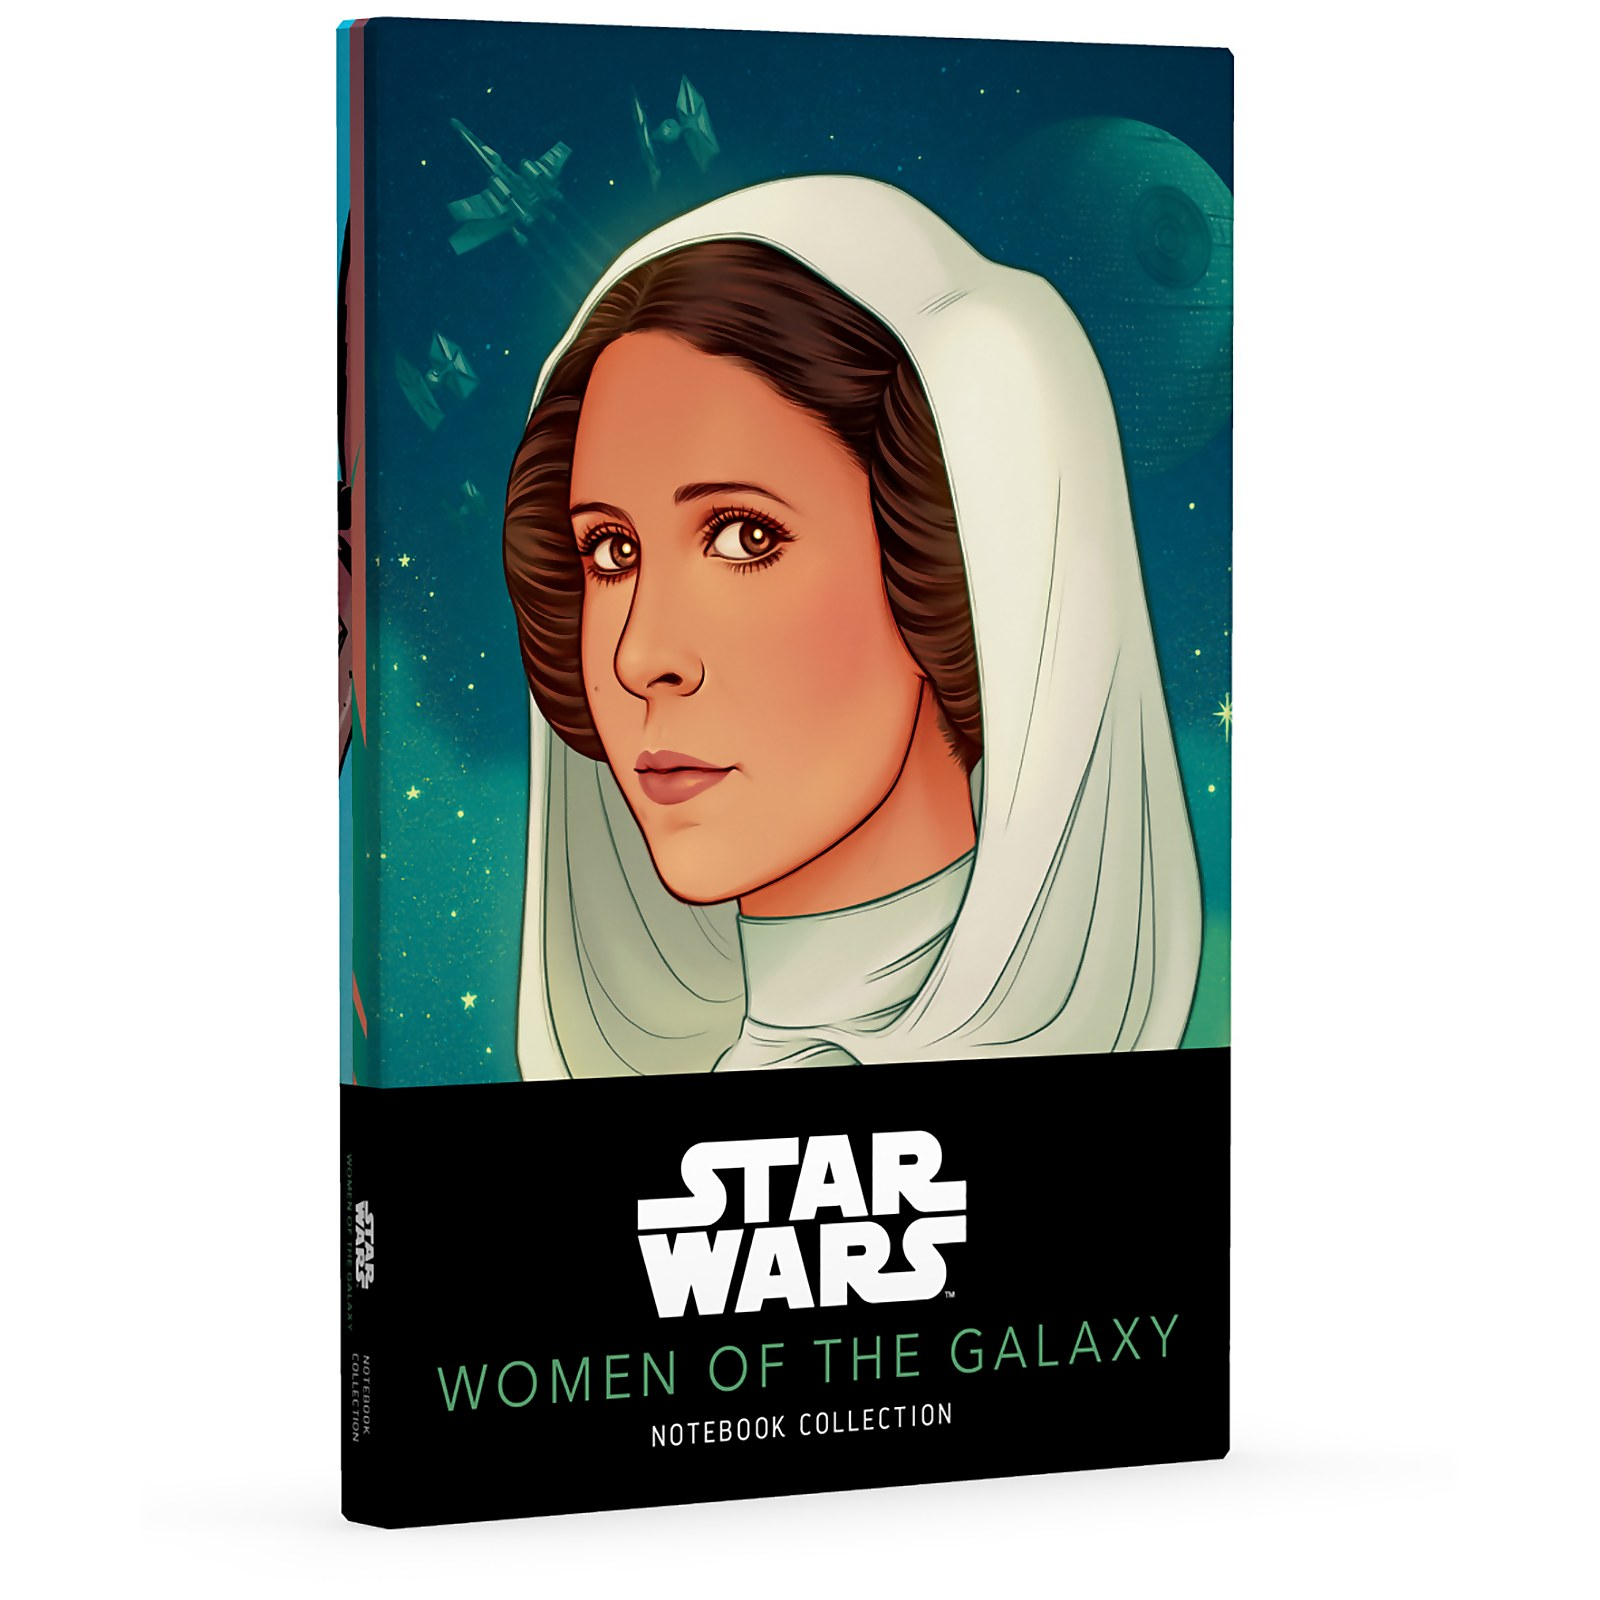 Image of Star Wars: Women of the Galaxy Notebook Set